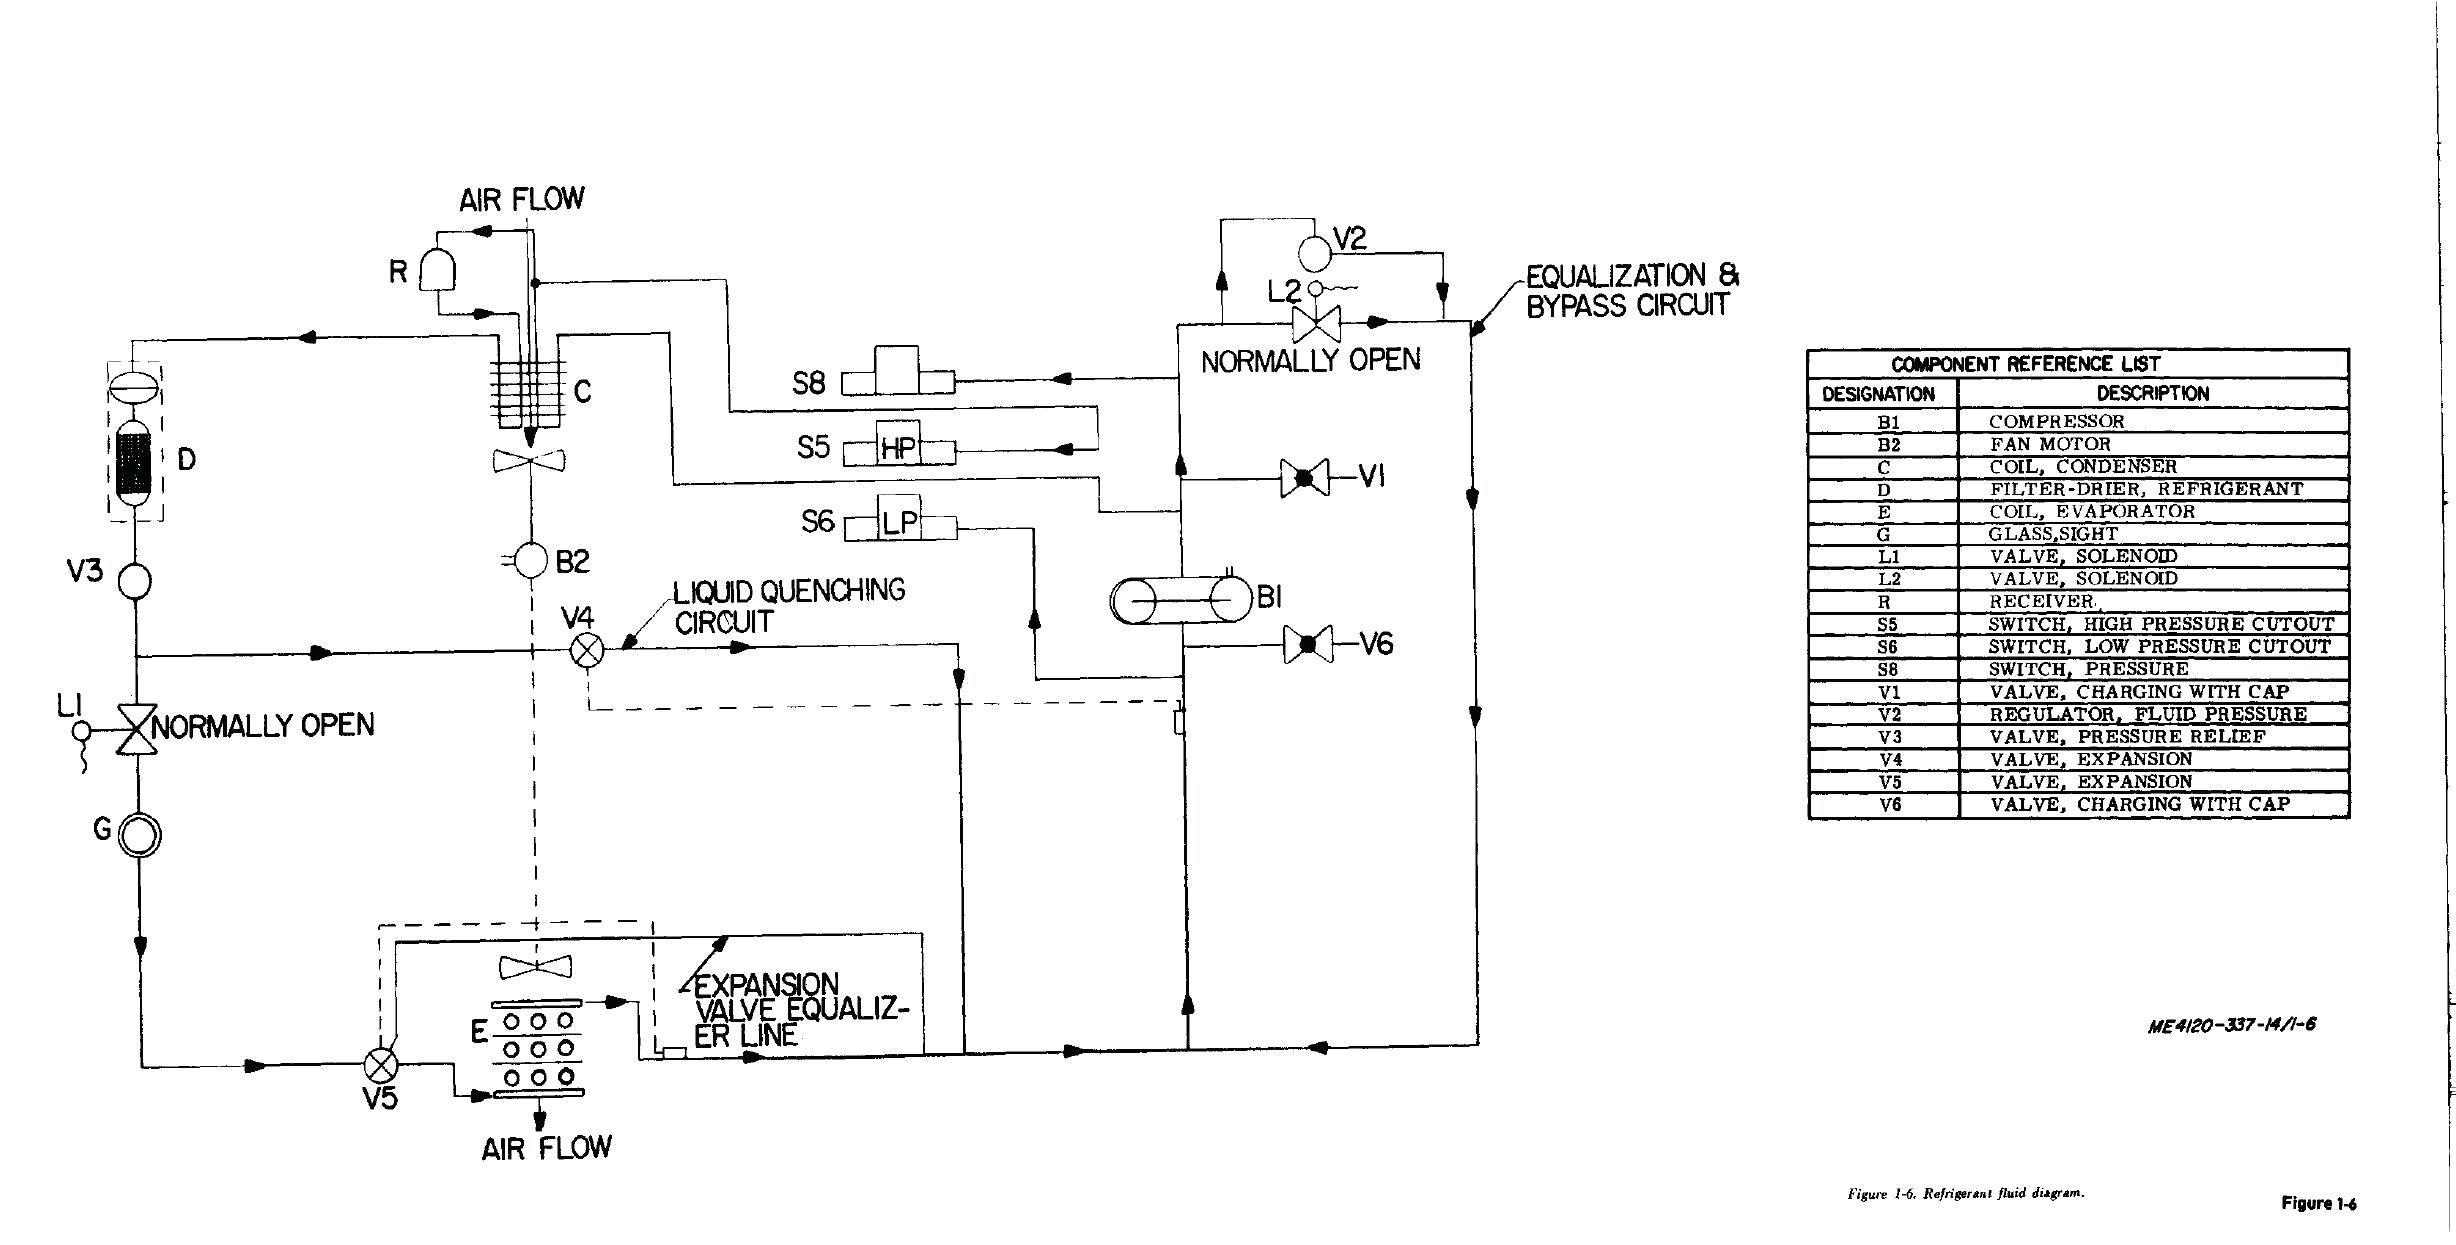 Comfortmaker Air Conditioner Wiring Diagram - All Wiring Diagram Data - Air Conditioner Wiring Diagram Pdf